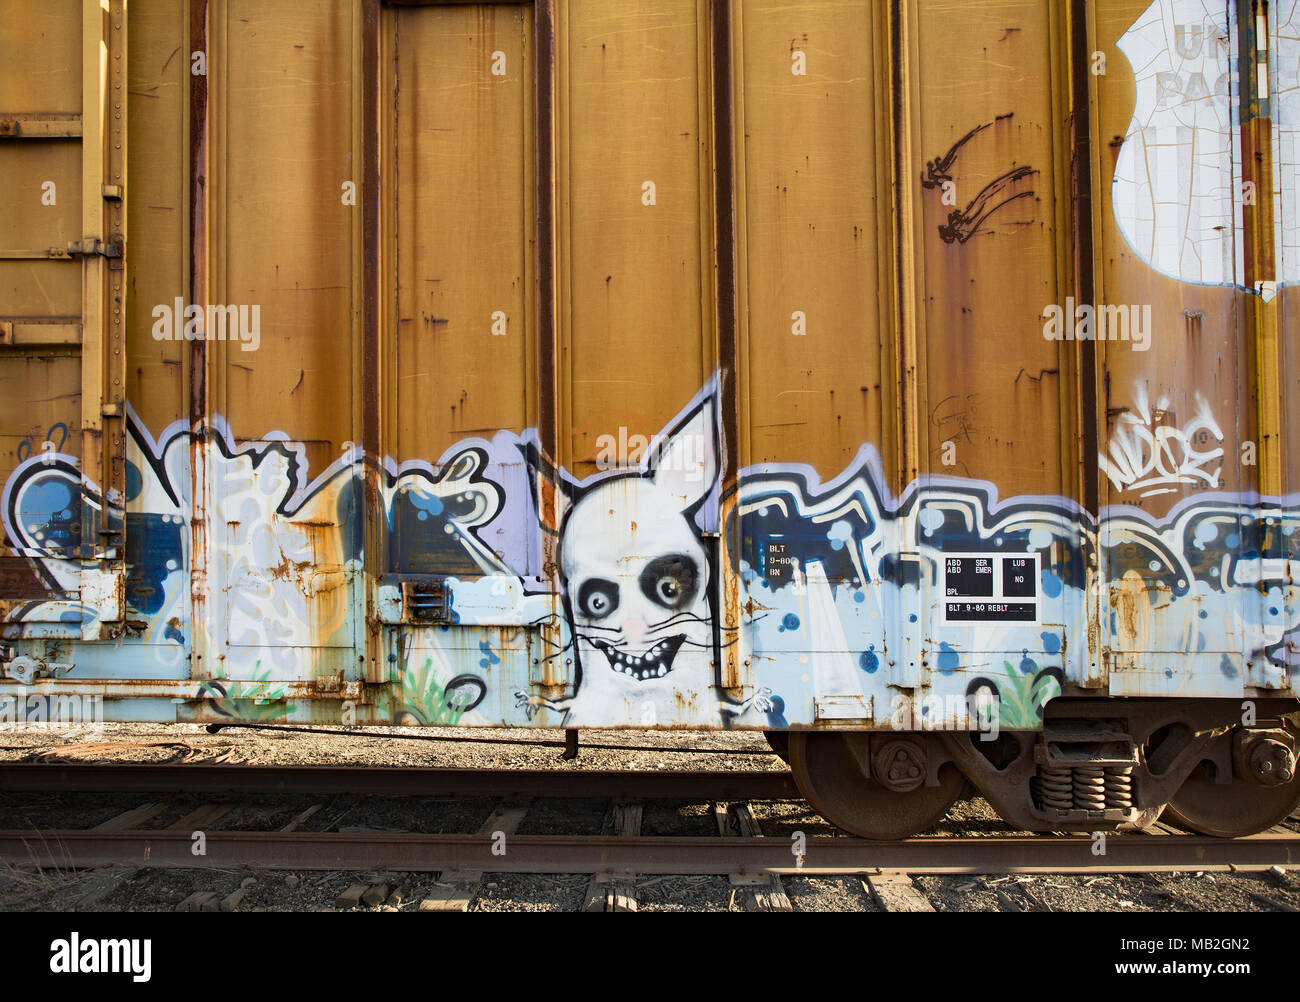 Graffiti rabbit stock photos graffiti rabbit stock images